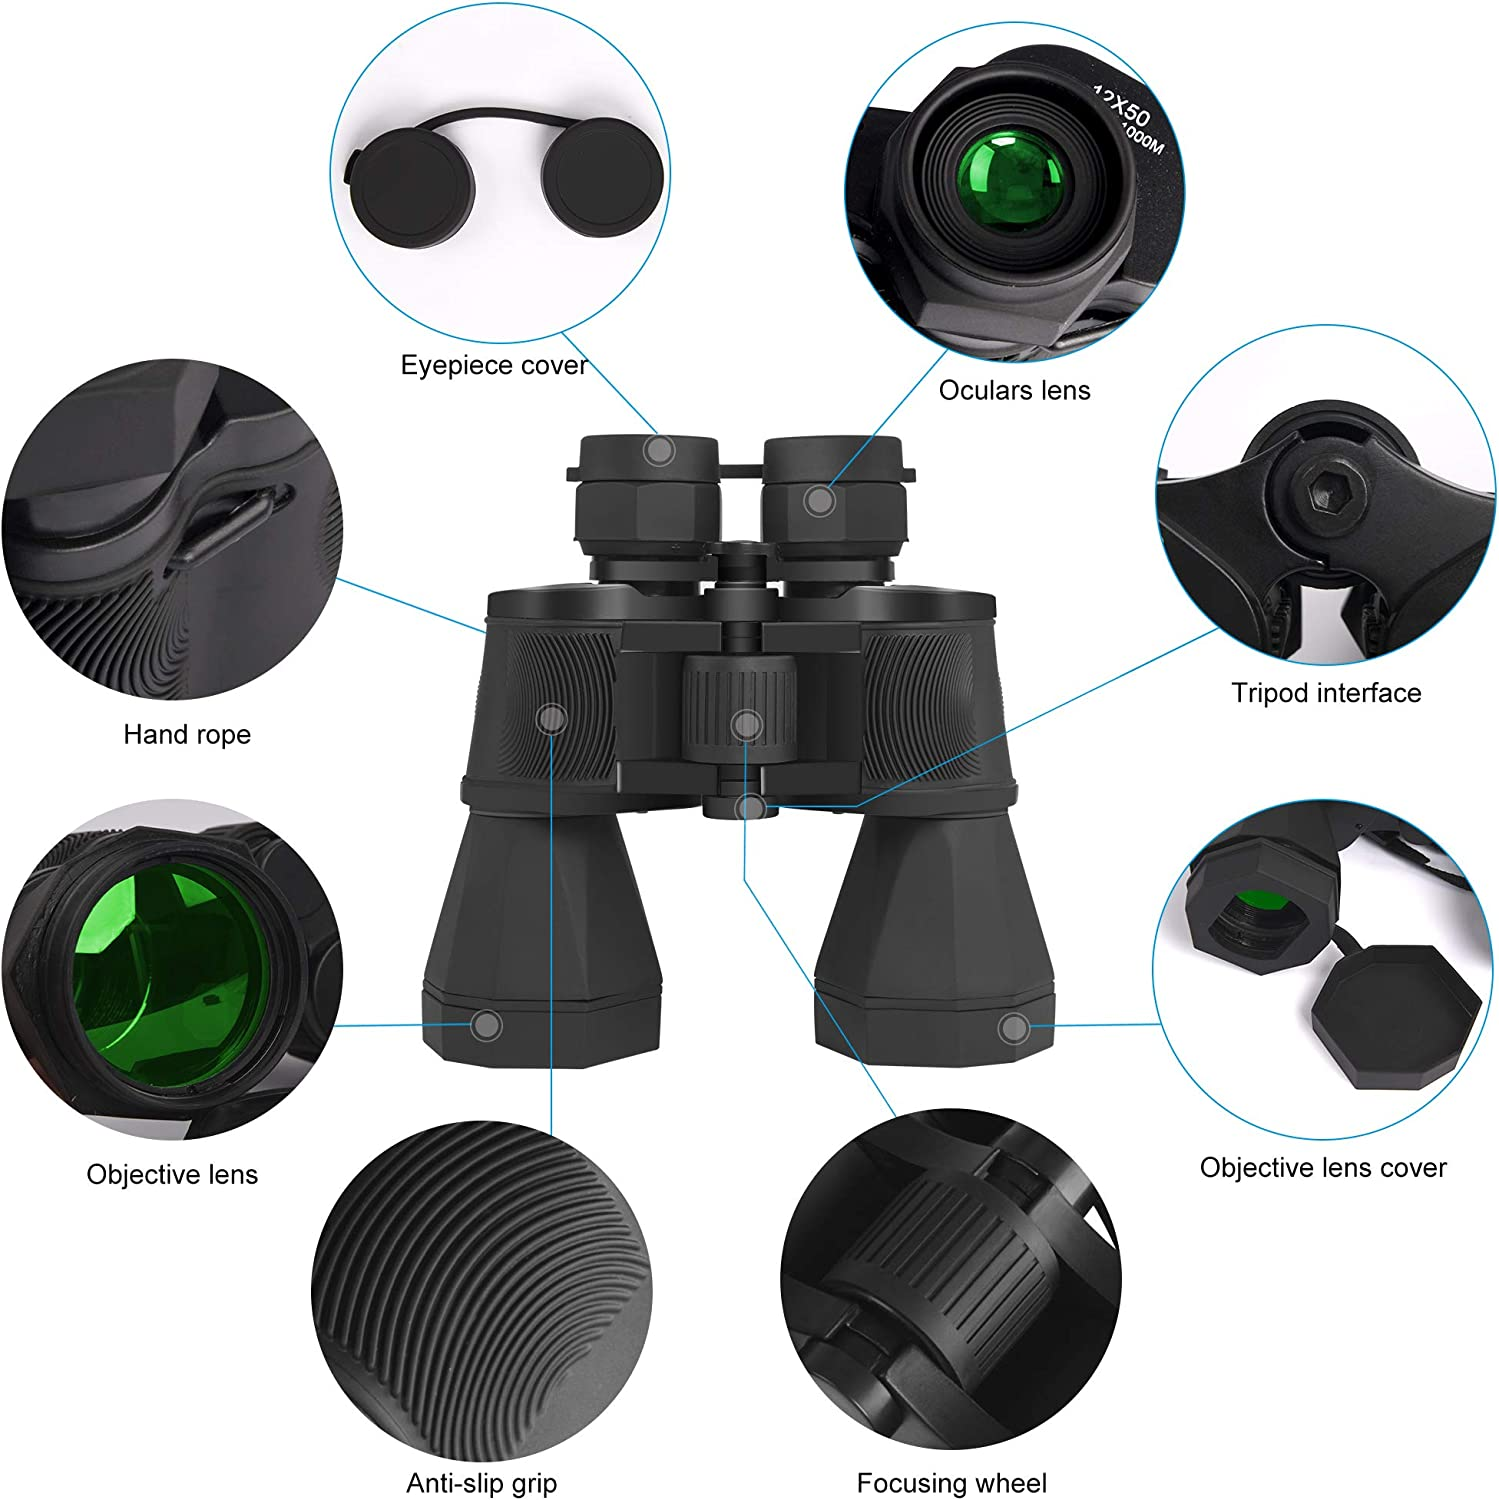 UPSKR 12×50 Compact Binoculars with Low Light Night Vision, Large Eyepiece High Power Waterproof Folding Binocular Easy Focus for Outdoor Hunting, Bird Watching, Traveling, Sightseeing Fit for Adults